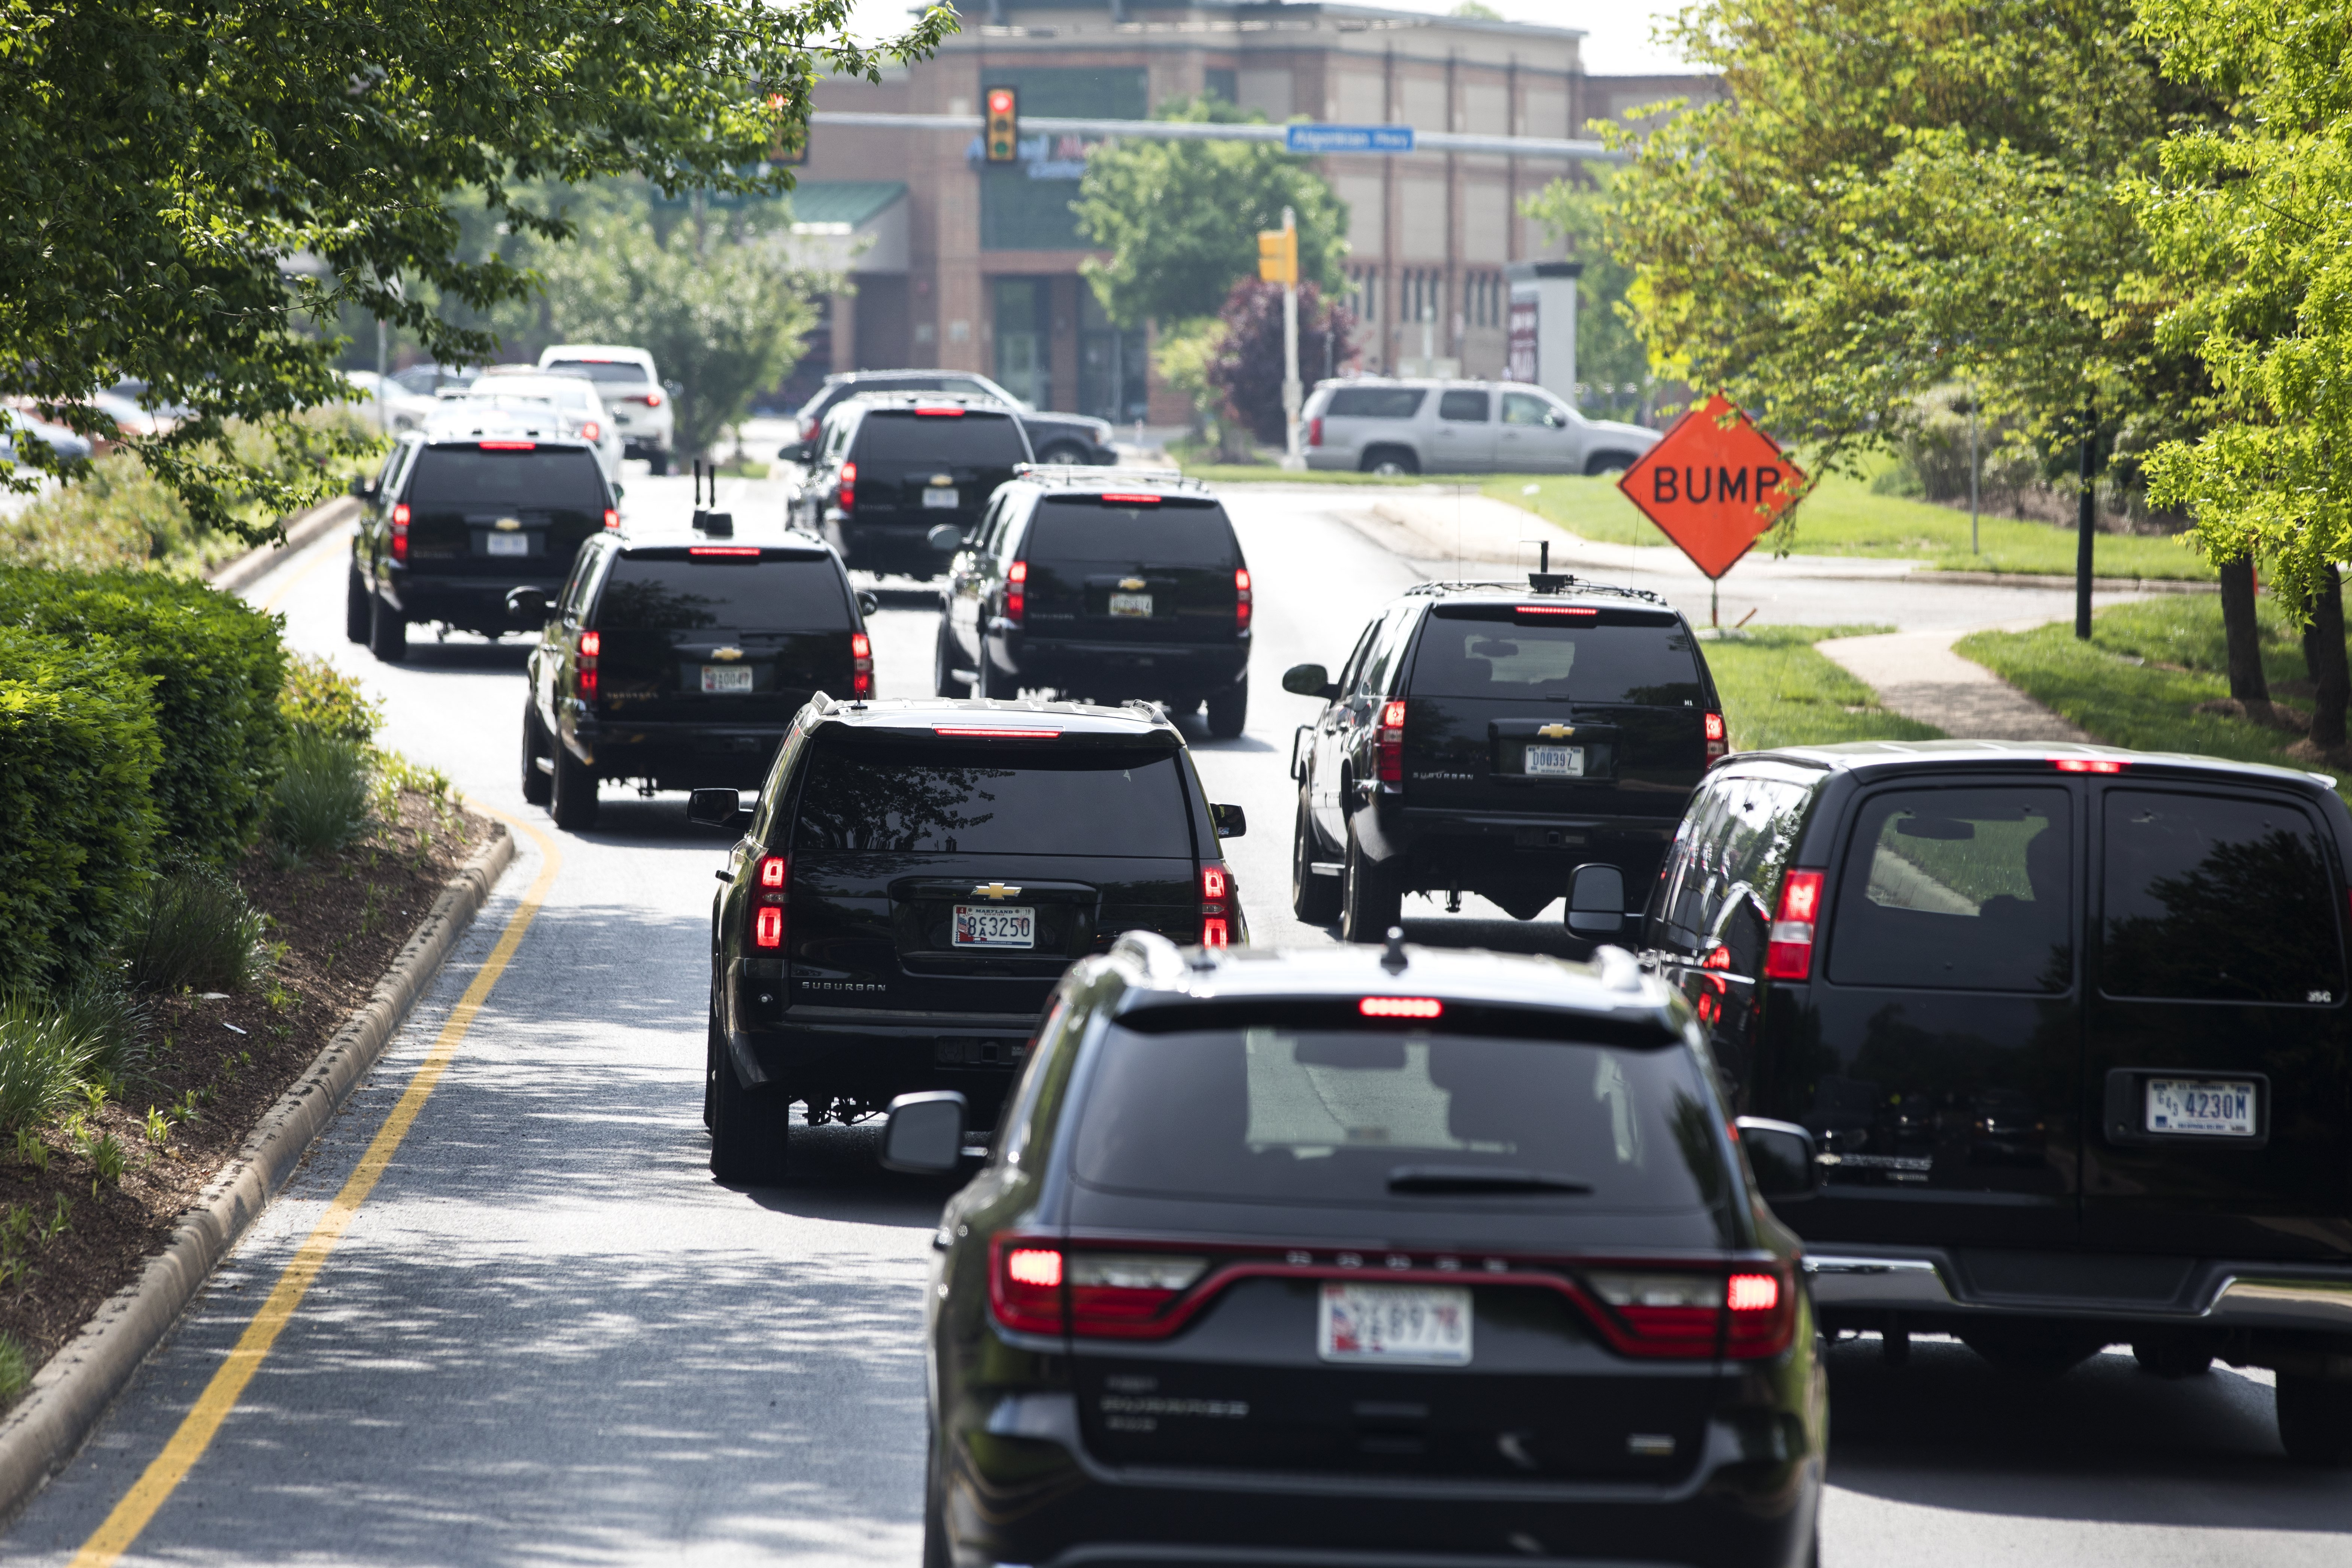 President Donald J. Trump's motorcade heads back to the White House from the Trump National Golf Club in Sterling, Virginia on April 30, 2017.